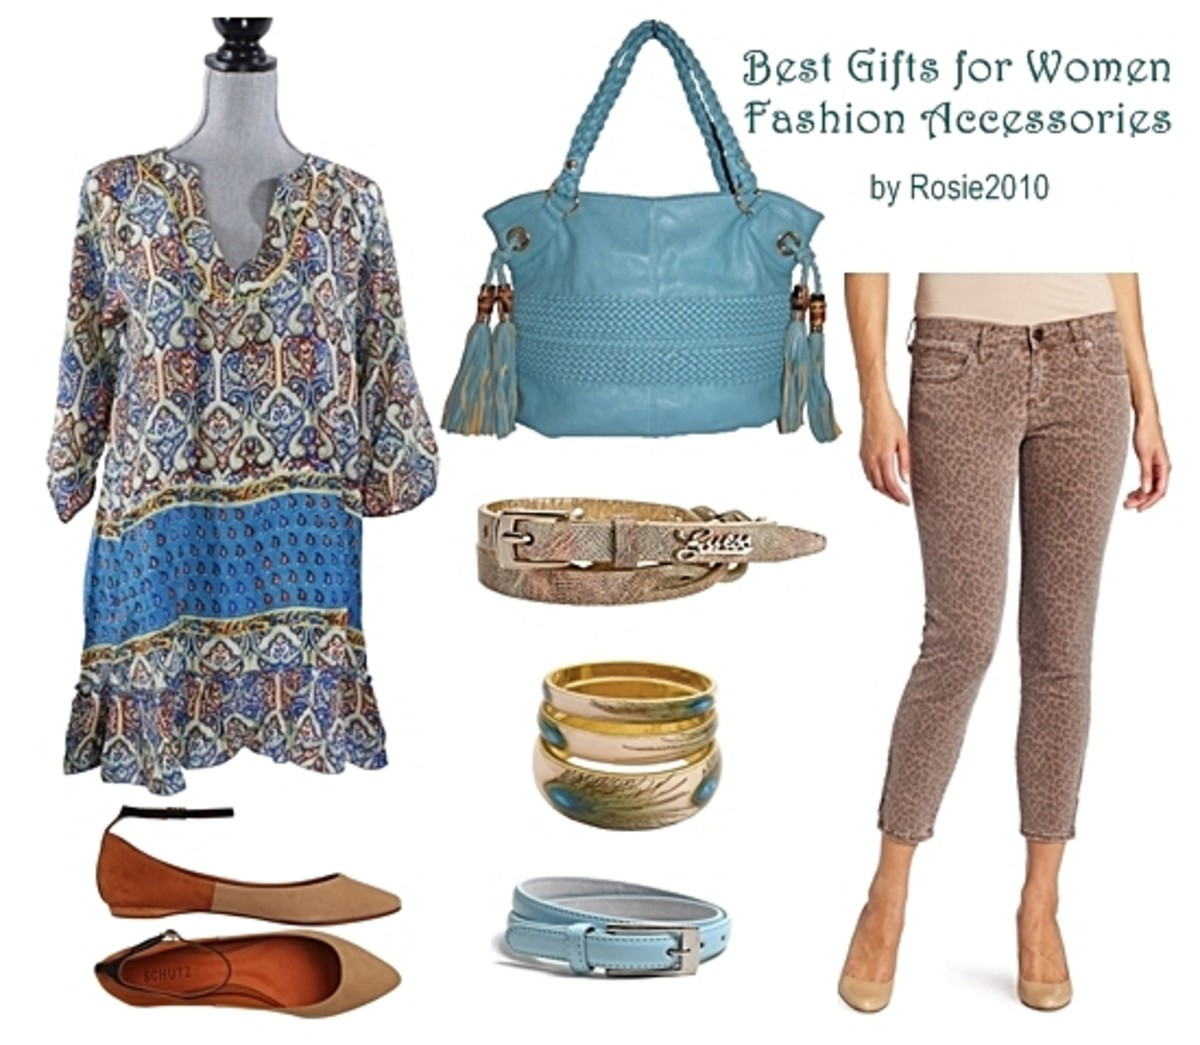 Best Gift Ideas for Women - Fashion Accessories Gifts $100